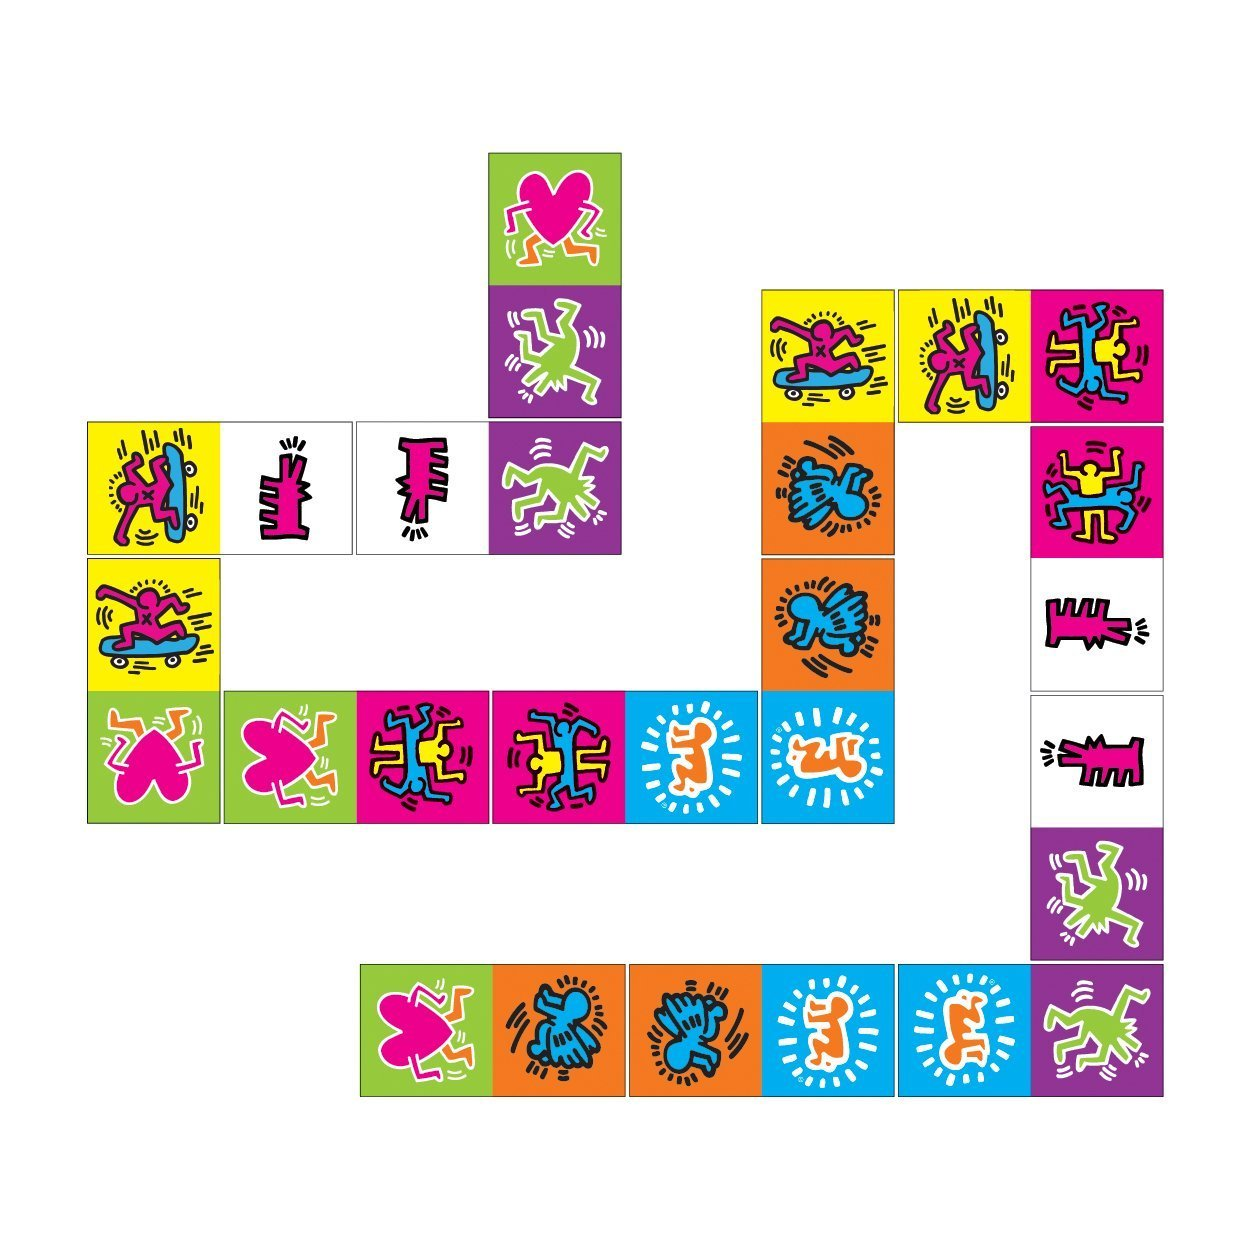 Galison: Wooden Dominoes - Keith Haring image